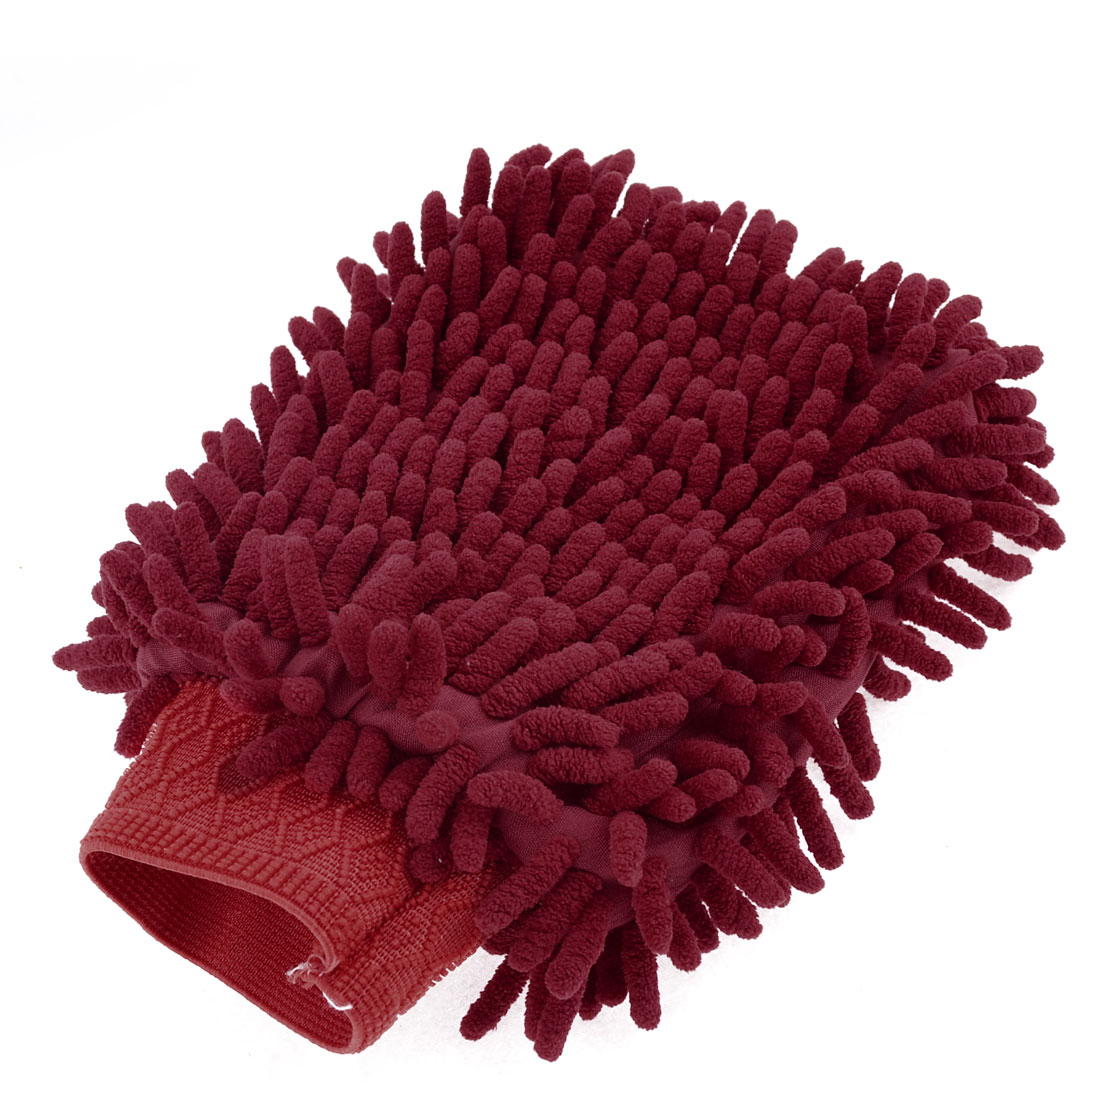 Household Stretch Chenille Furniture Window Scrubing Gloves Mittens Red